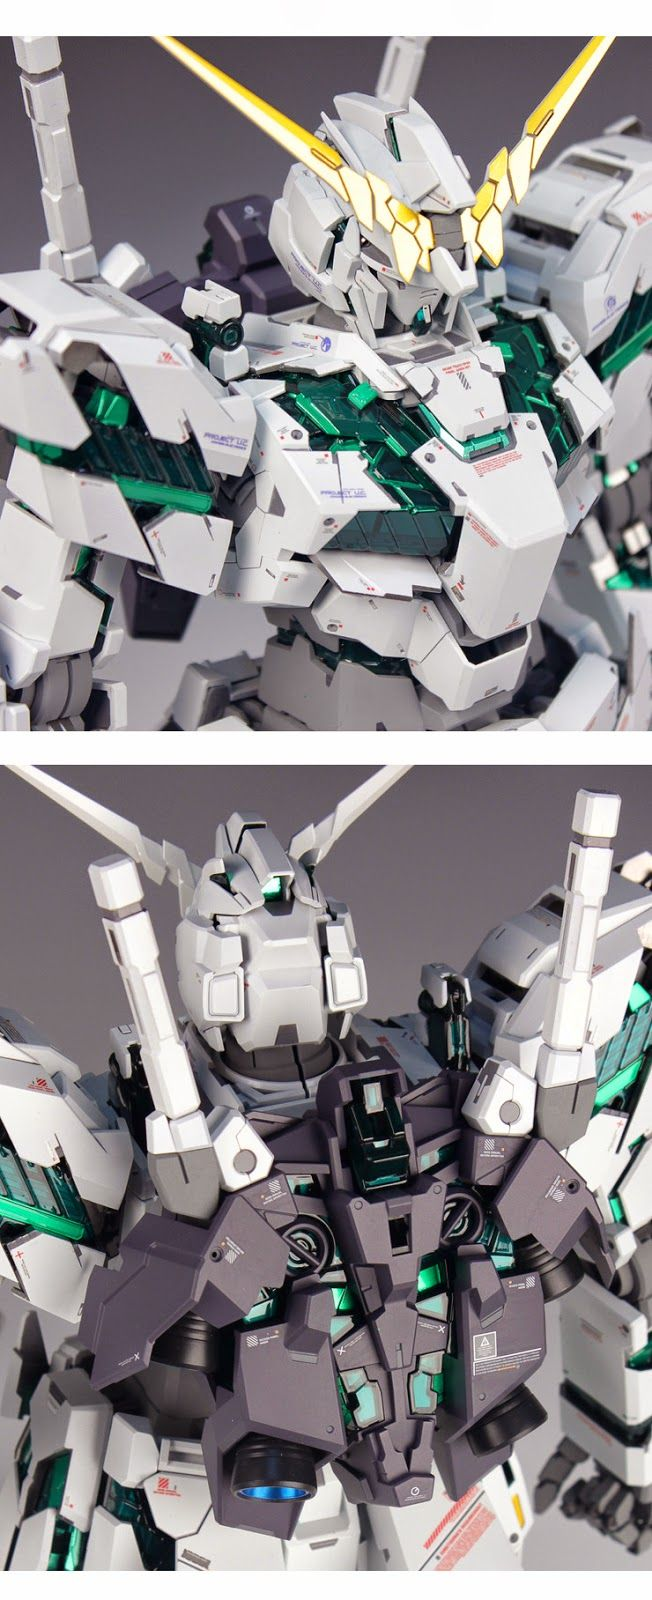 PG 1/60 Unicorn Gundam - Customized Build PG 1/60 RX-0 Unicorn Gundam (Release Date: Dec 11th 2014, Price: 21600 Yen) GG INFINITE: OR...